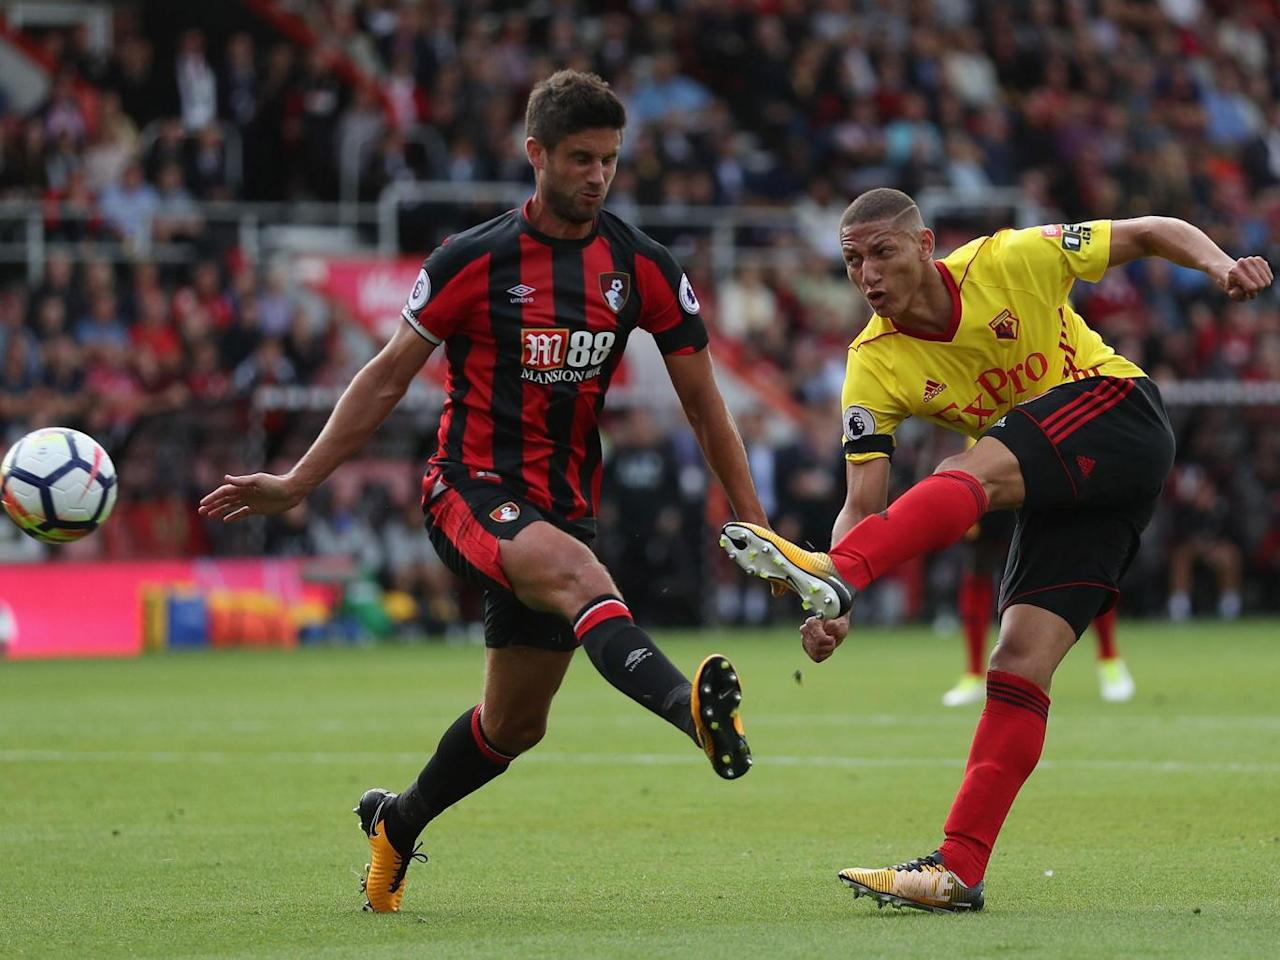 Richarlison nets first Watford goal as Hornets keep Bournemouth winless